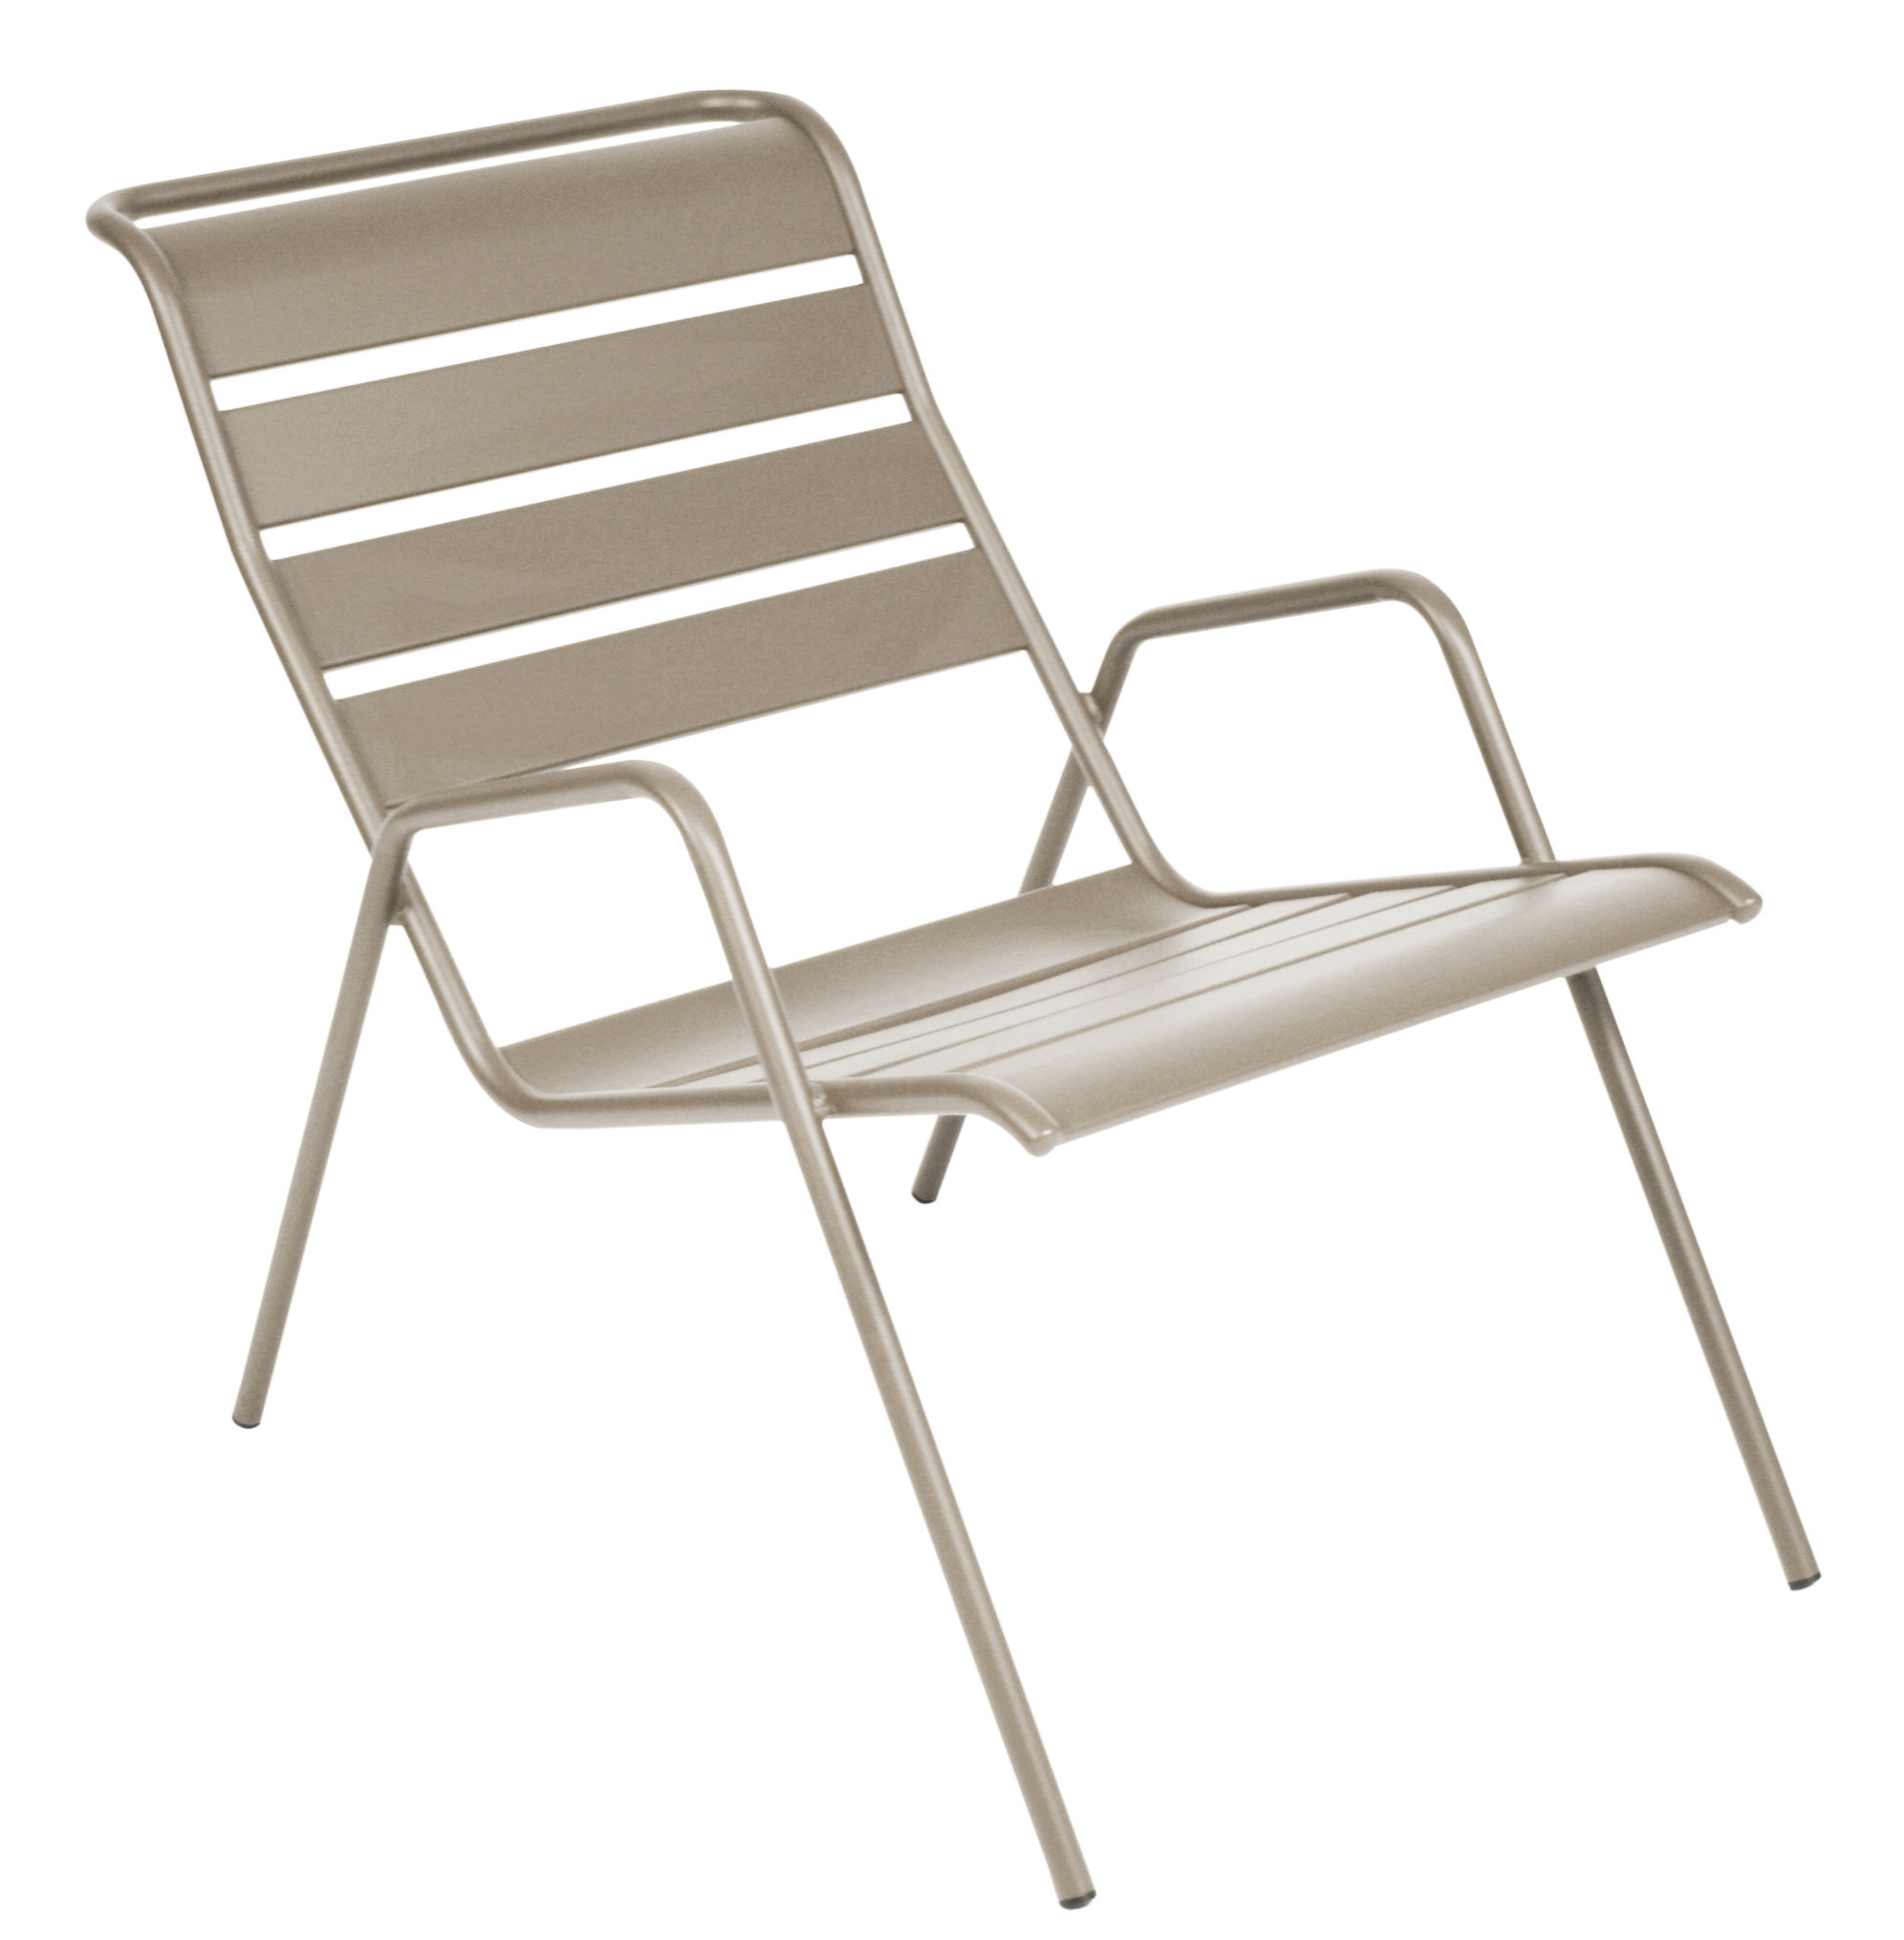 Lounge Sessel Stapelbar Monceau Lounge Sessel Stapelbar Muskat By Fermob